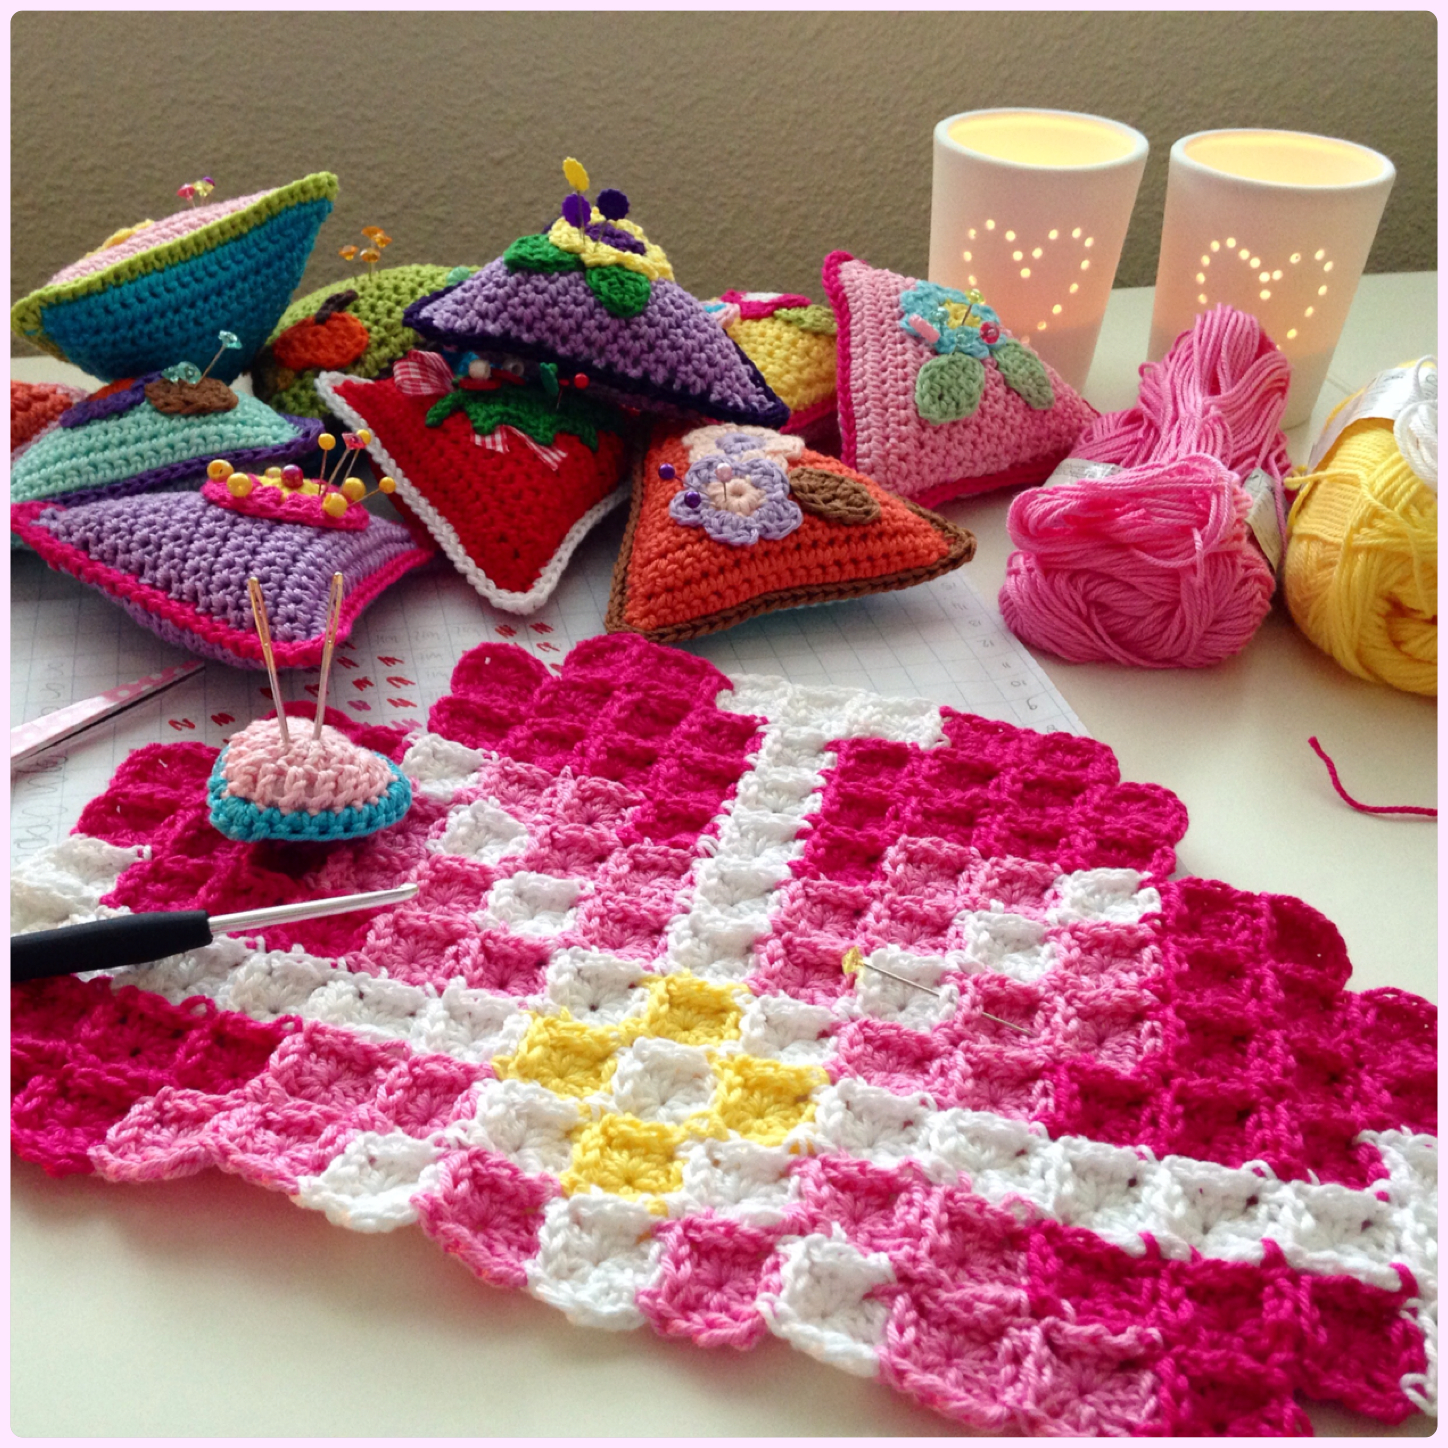 Pixelated Cushion Marrose Colorful Crochet Amp Crafts